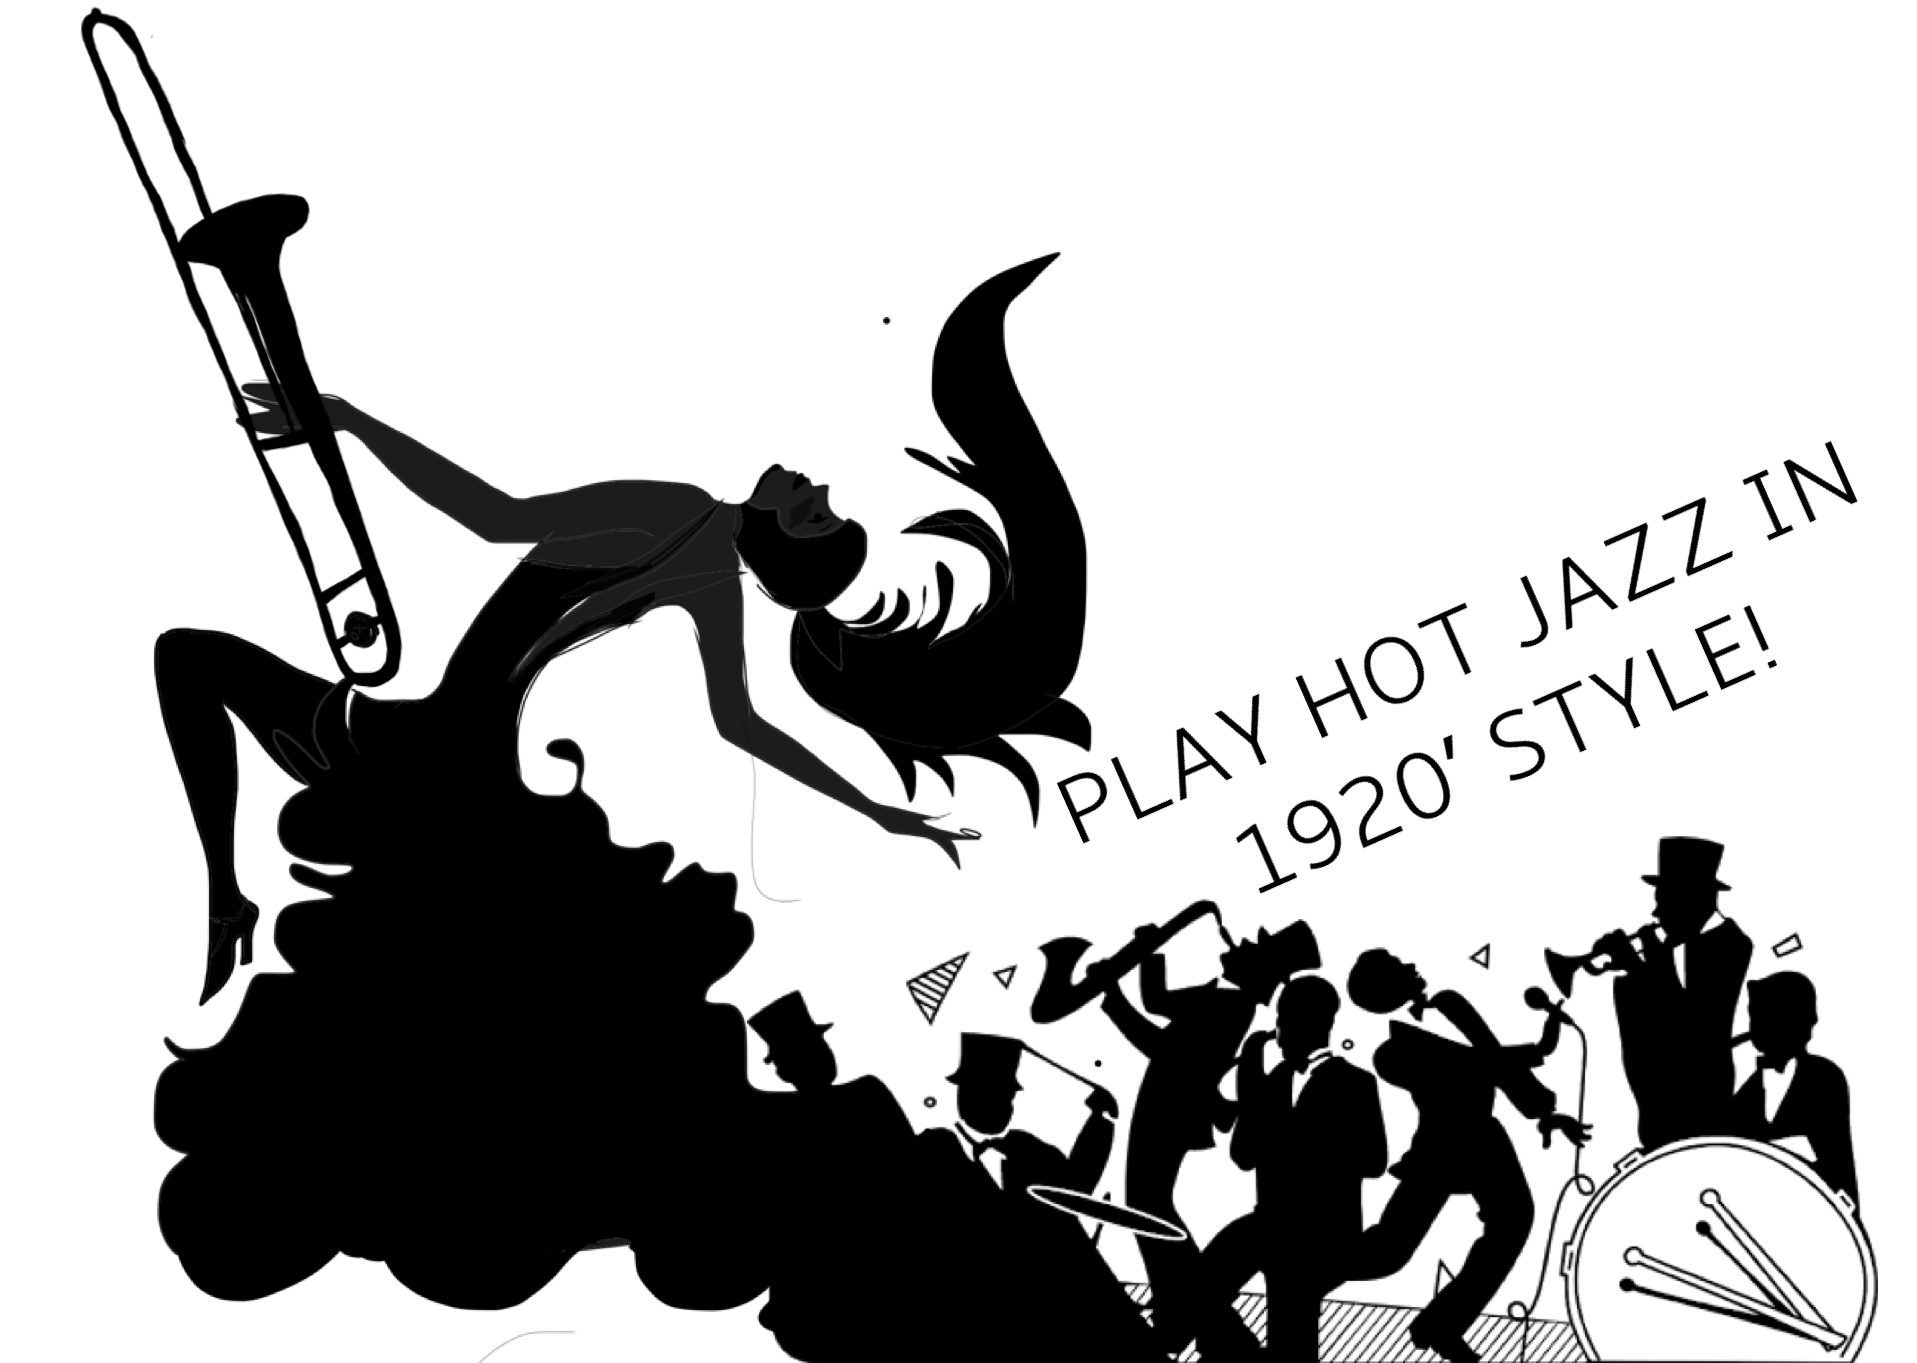 PLAY HOT JAZZ!